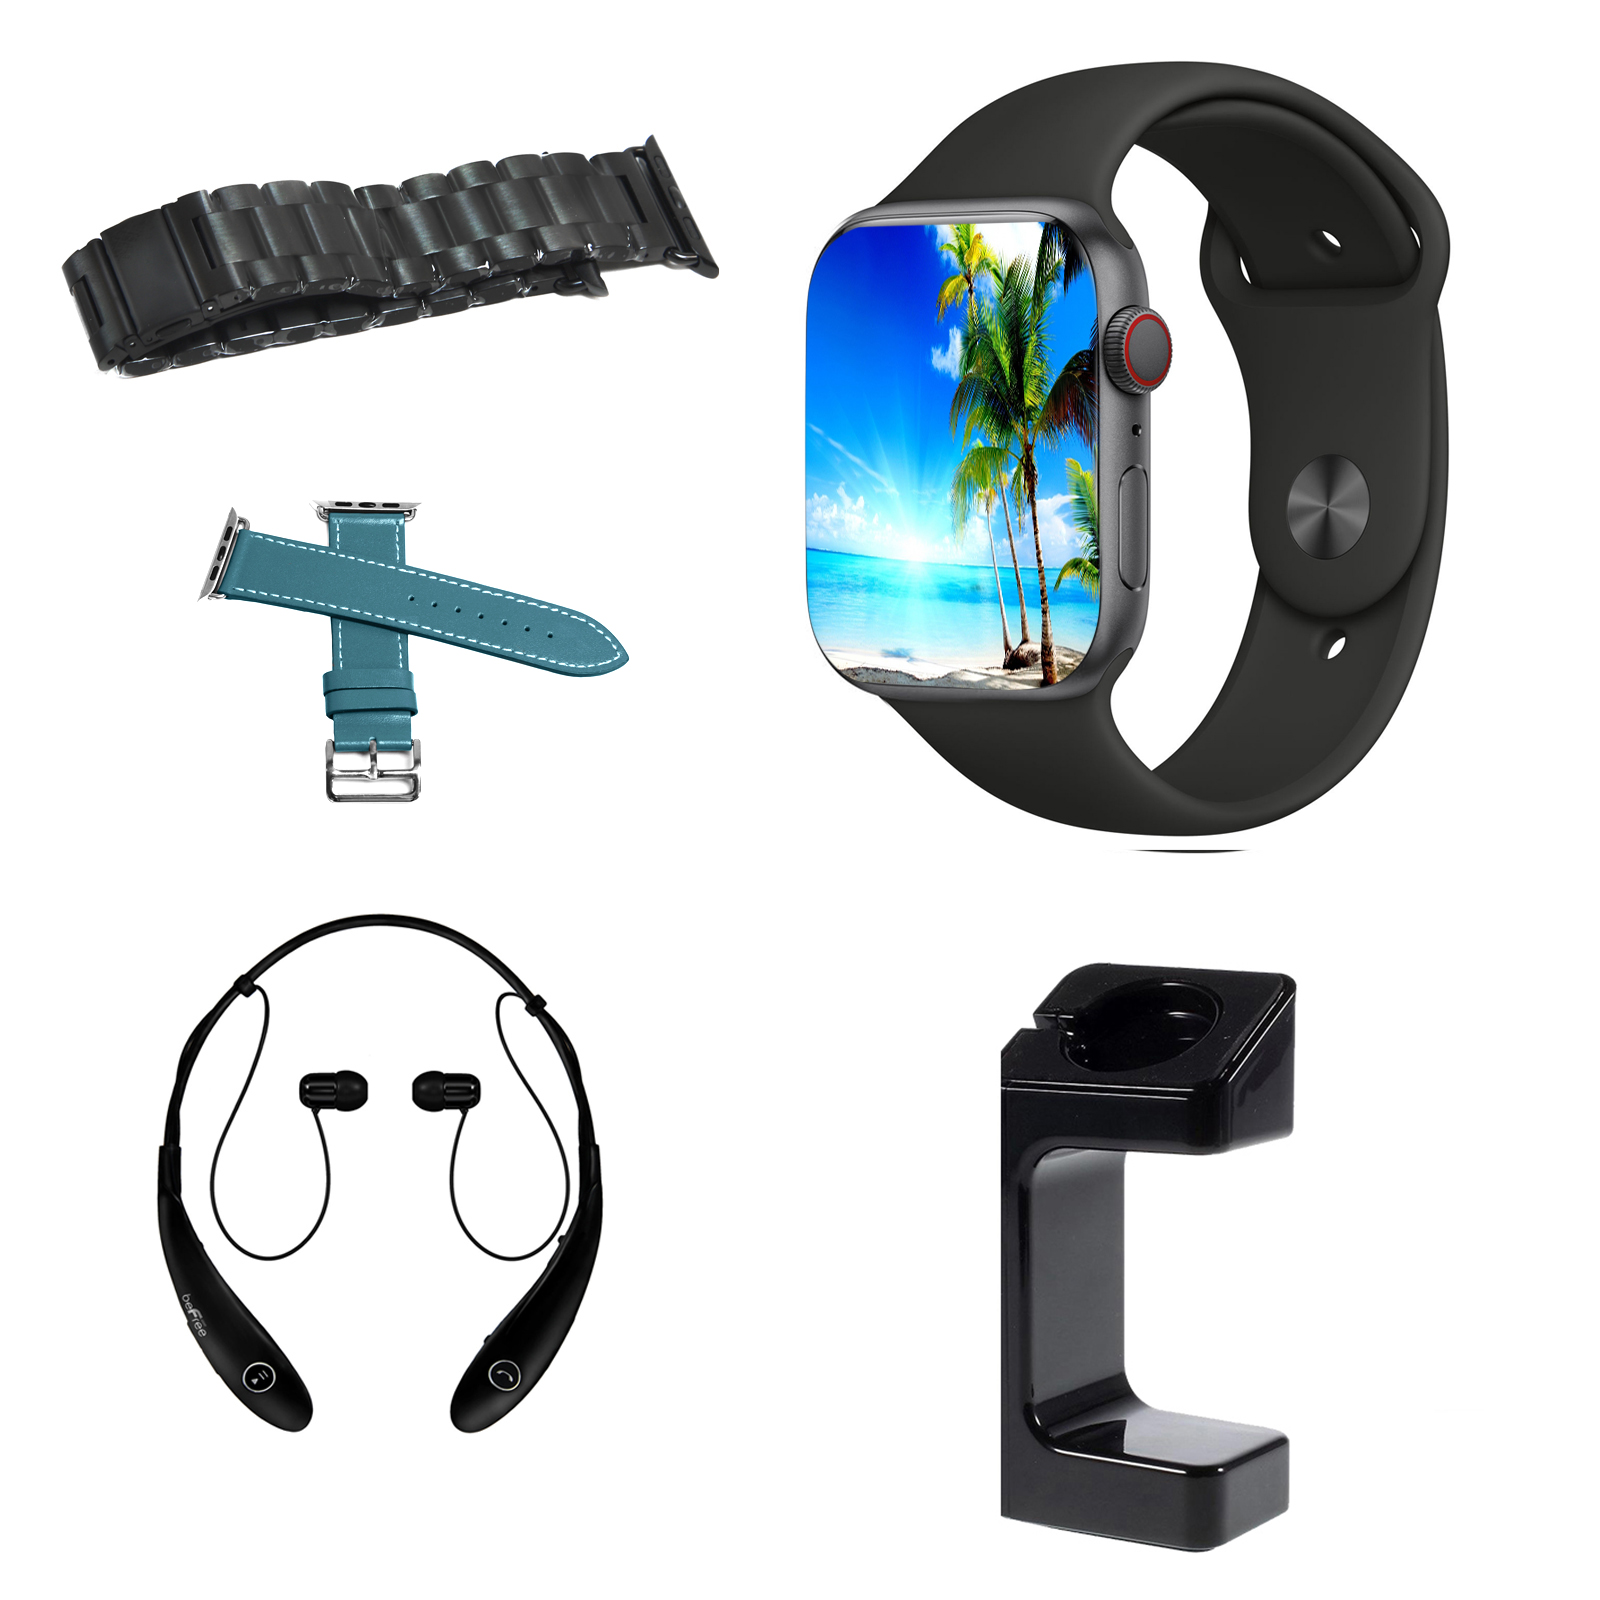 Image of Apple 970111129M Watch Series 4 44MM Cellular Space Gray with Black and Accessories